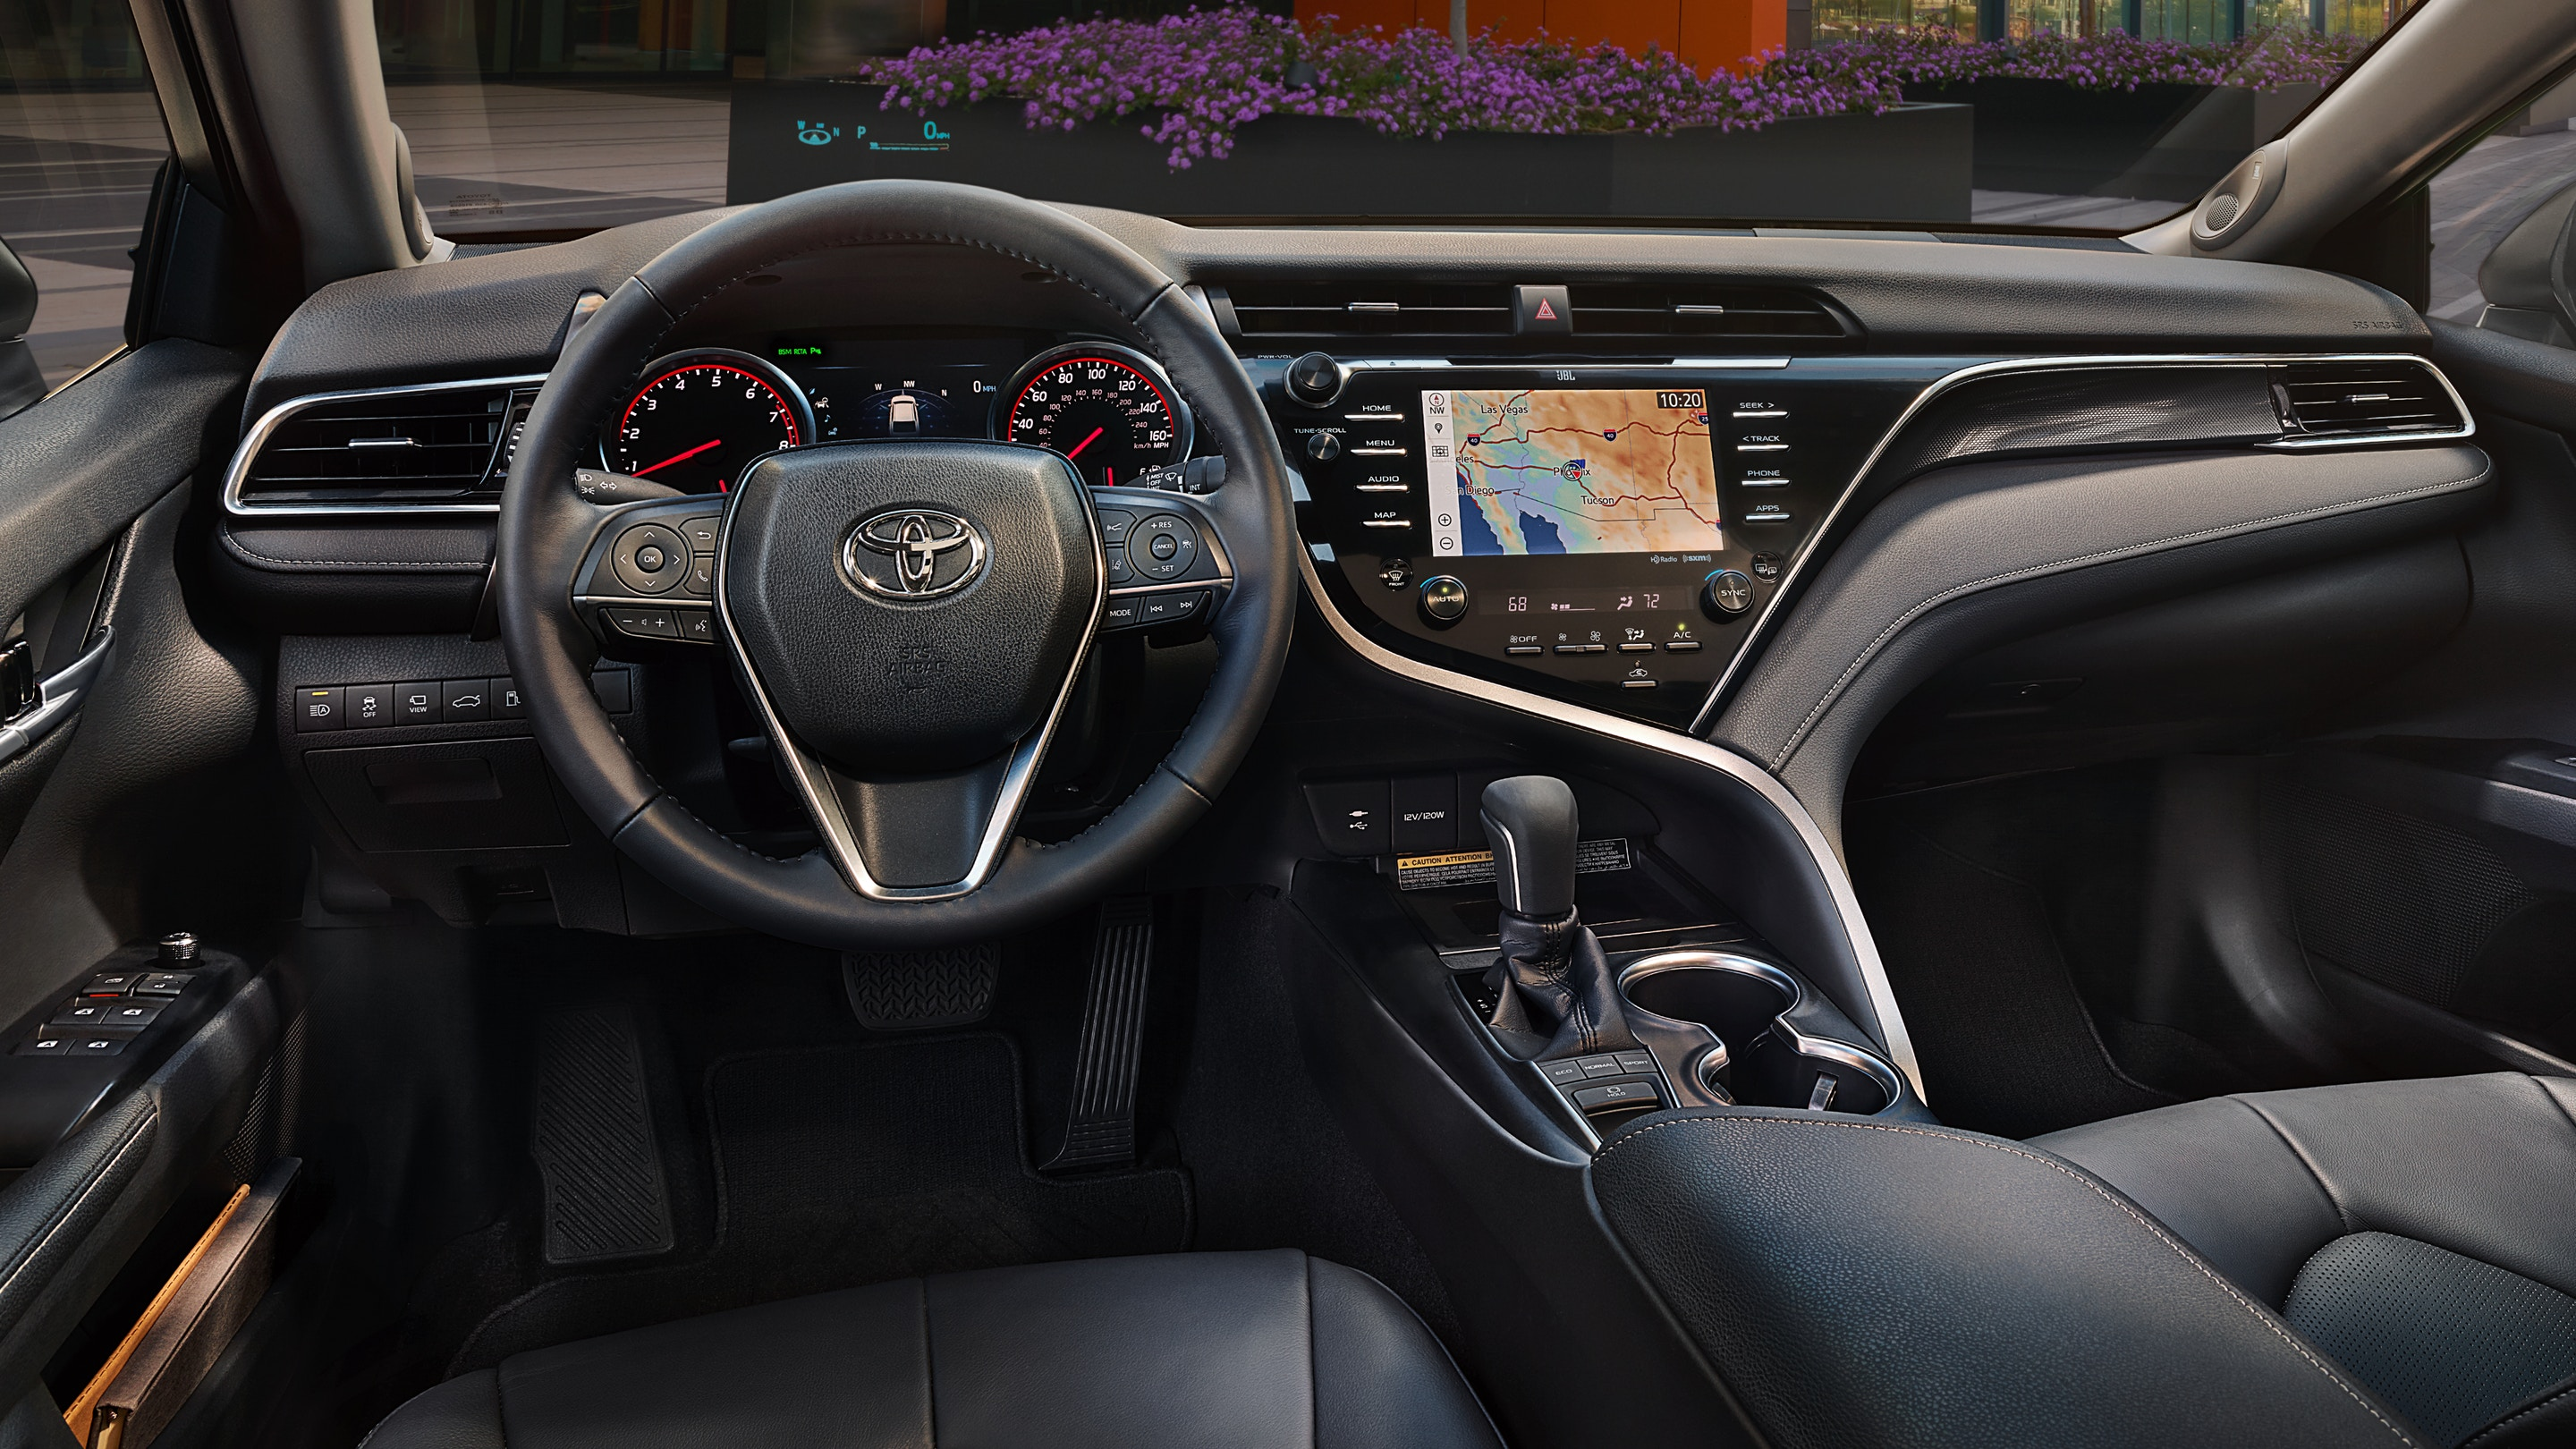 2020 Camry Center Stack